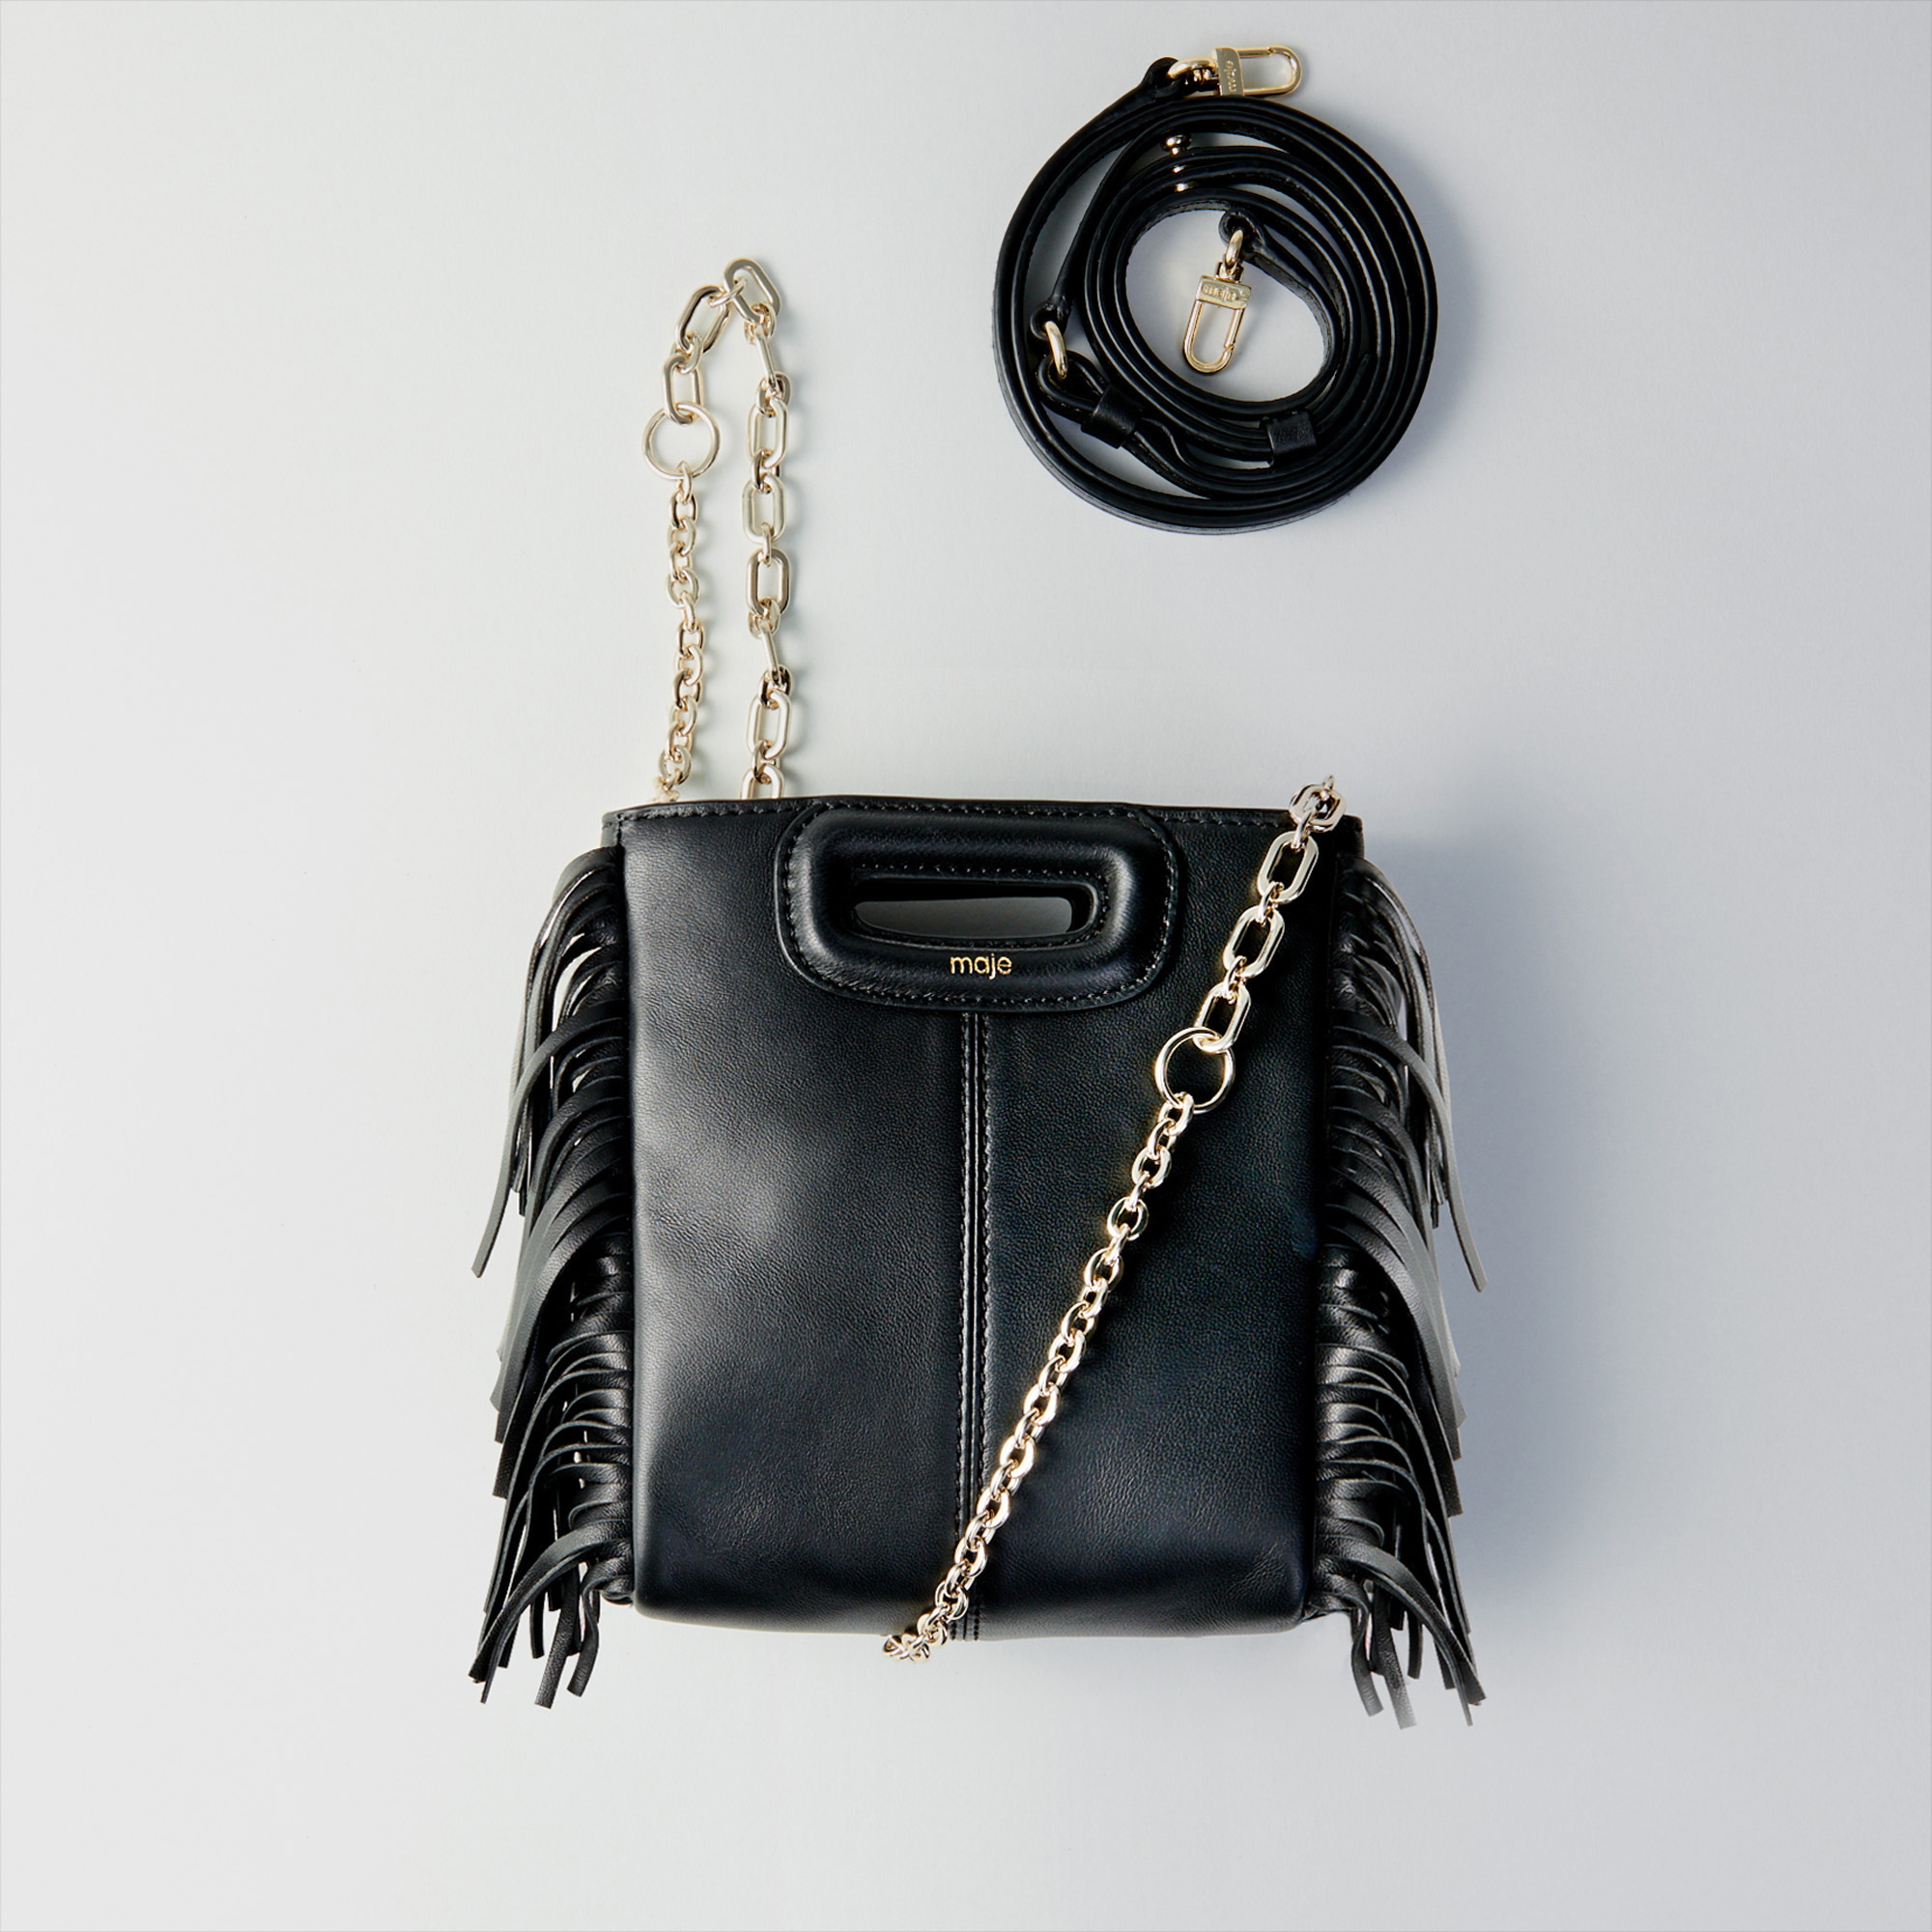 Mini leather M bag with chain - Black